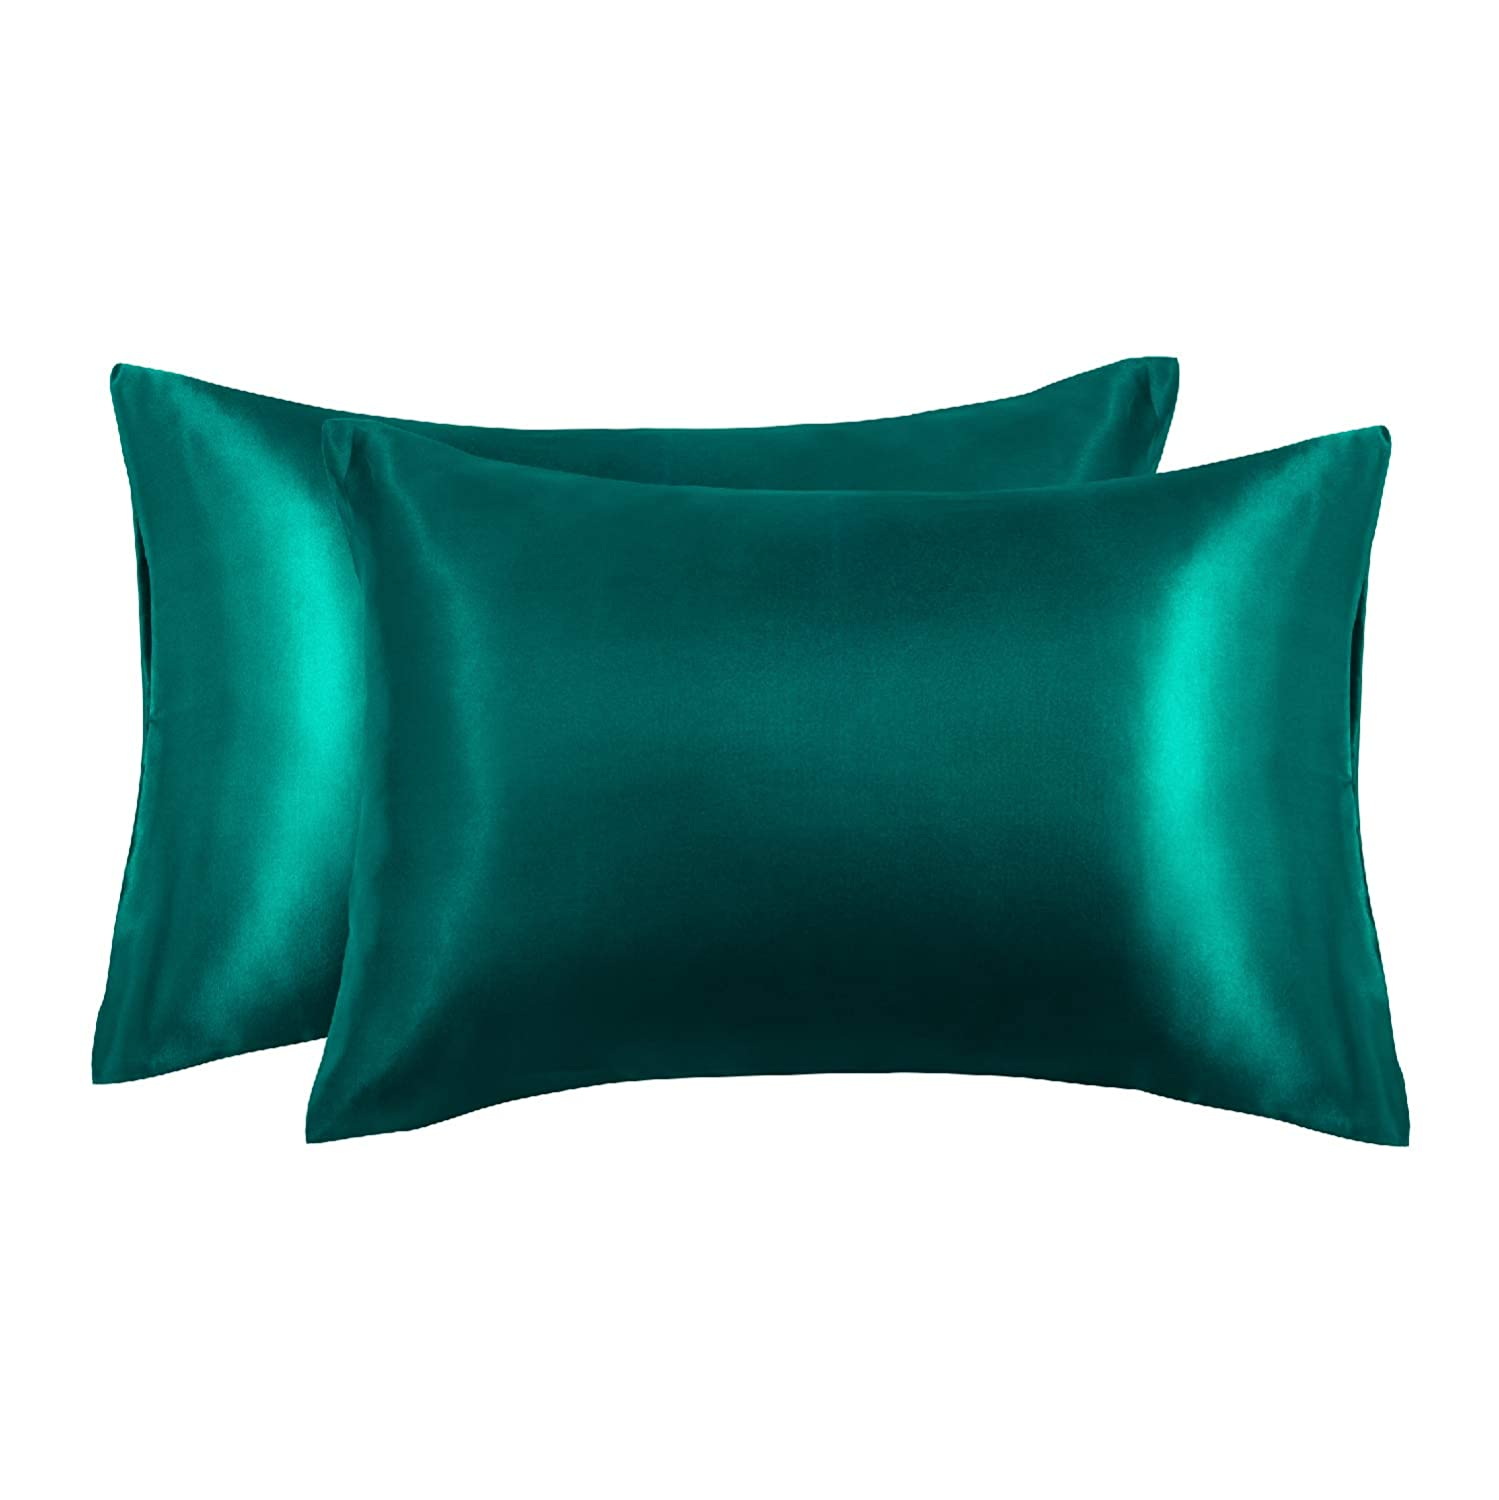 EXQ Home Satin Pillowcases Set of 2 for Hair and Skin Queen Size 20x30 Green Pillow Case with Envelope Closure (Anti Wrinkle,Wash-Resistant)